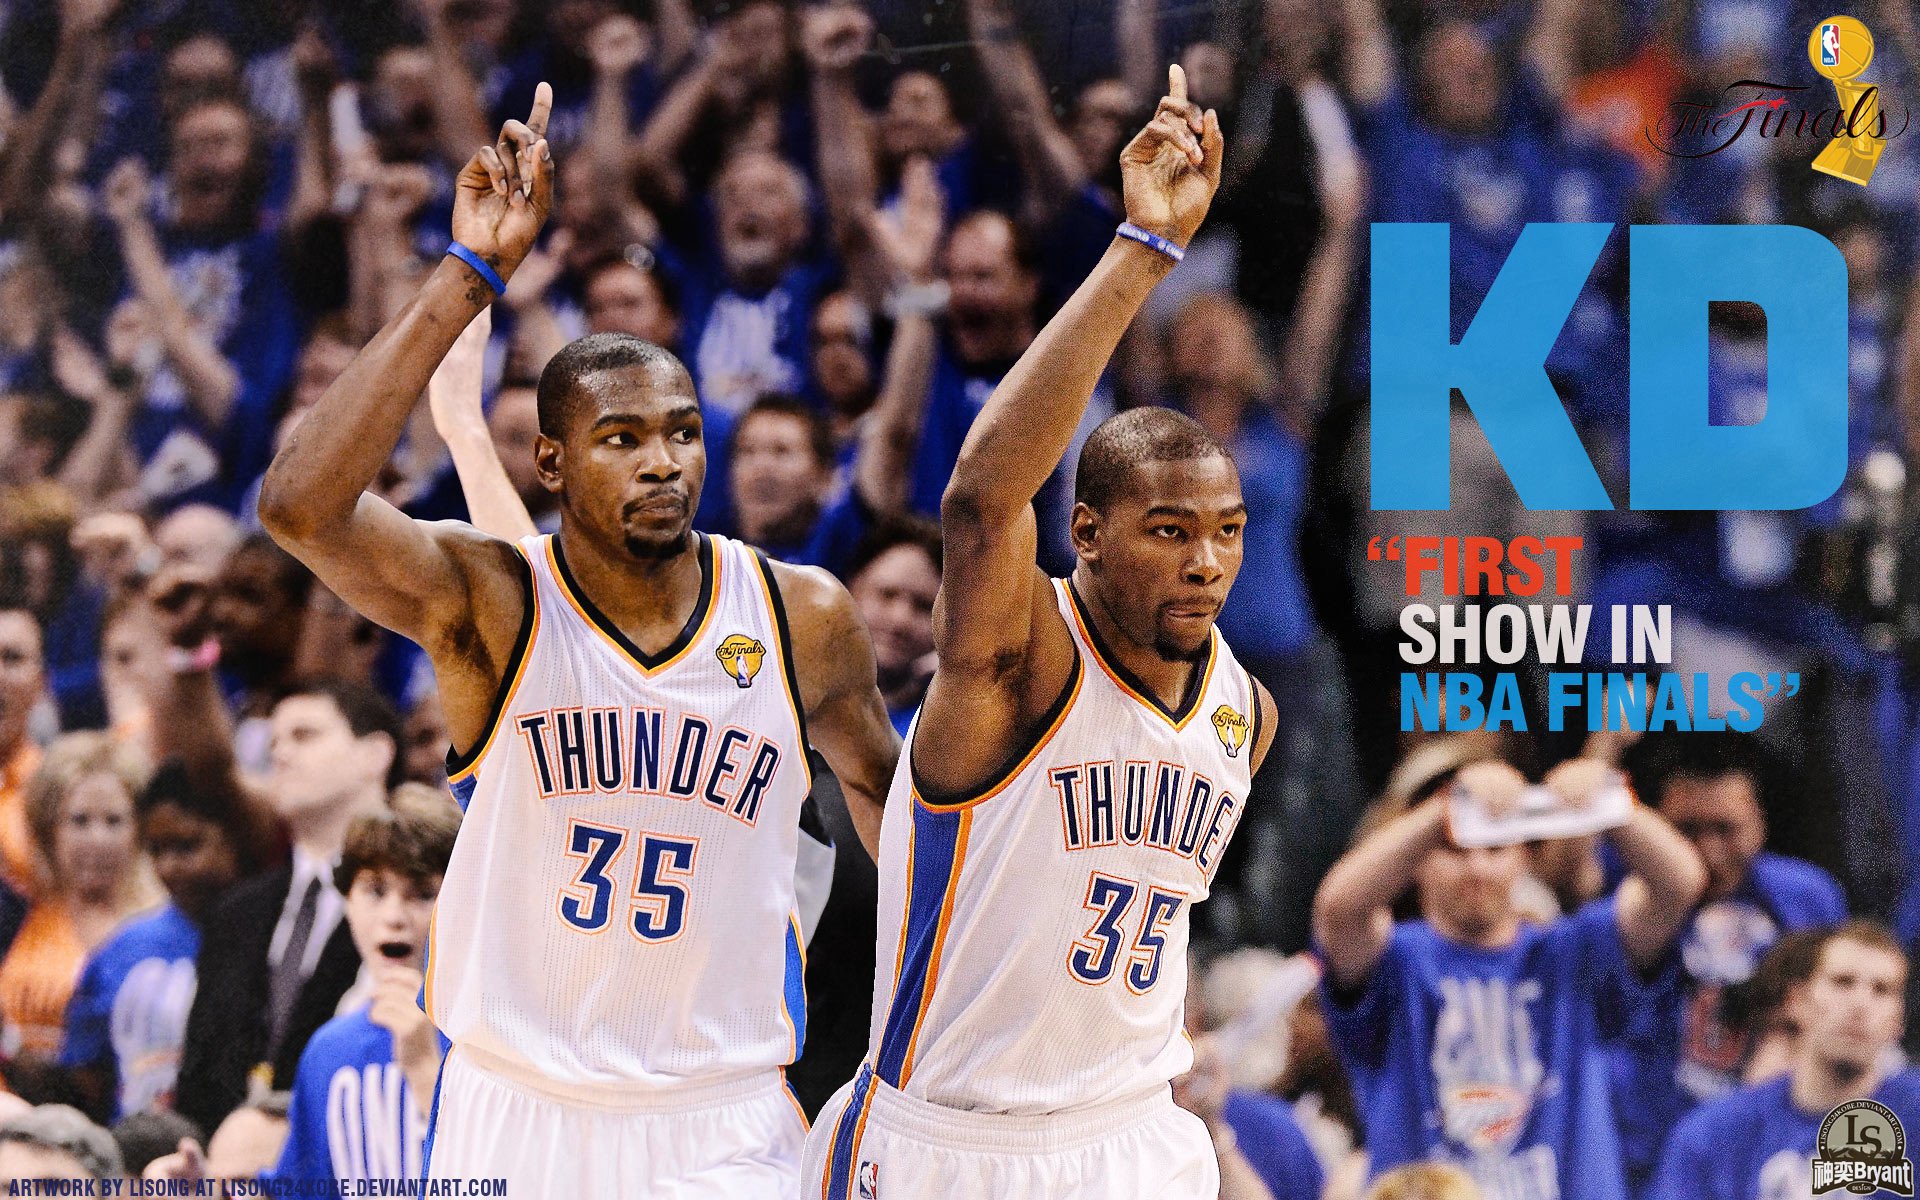 Kevin Durant And Russell Westbrook HD Wallpapers 4 | Kevin Durant And Russell  Westbrook HD Wallpapers | Pinterest | Russell westbrook, Kevin durant and  Nba …